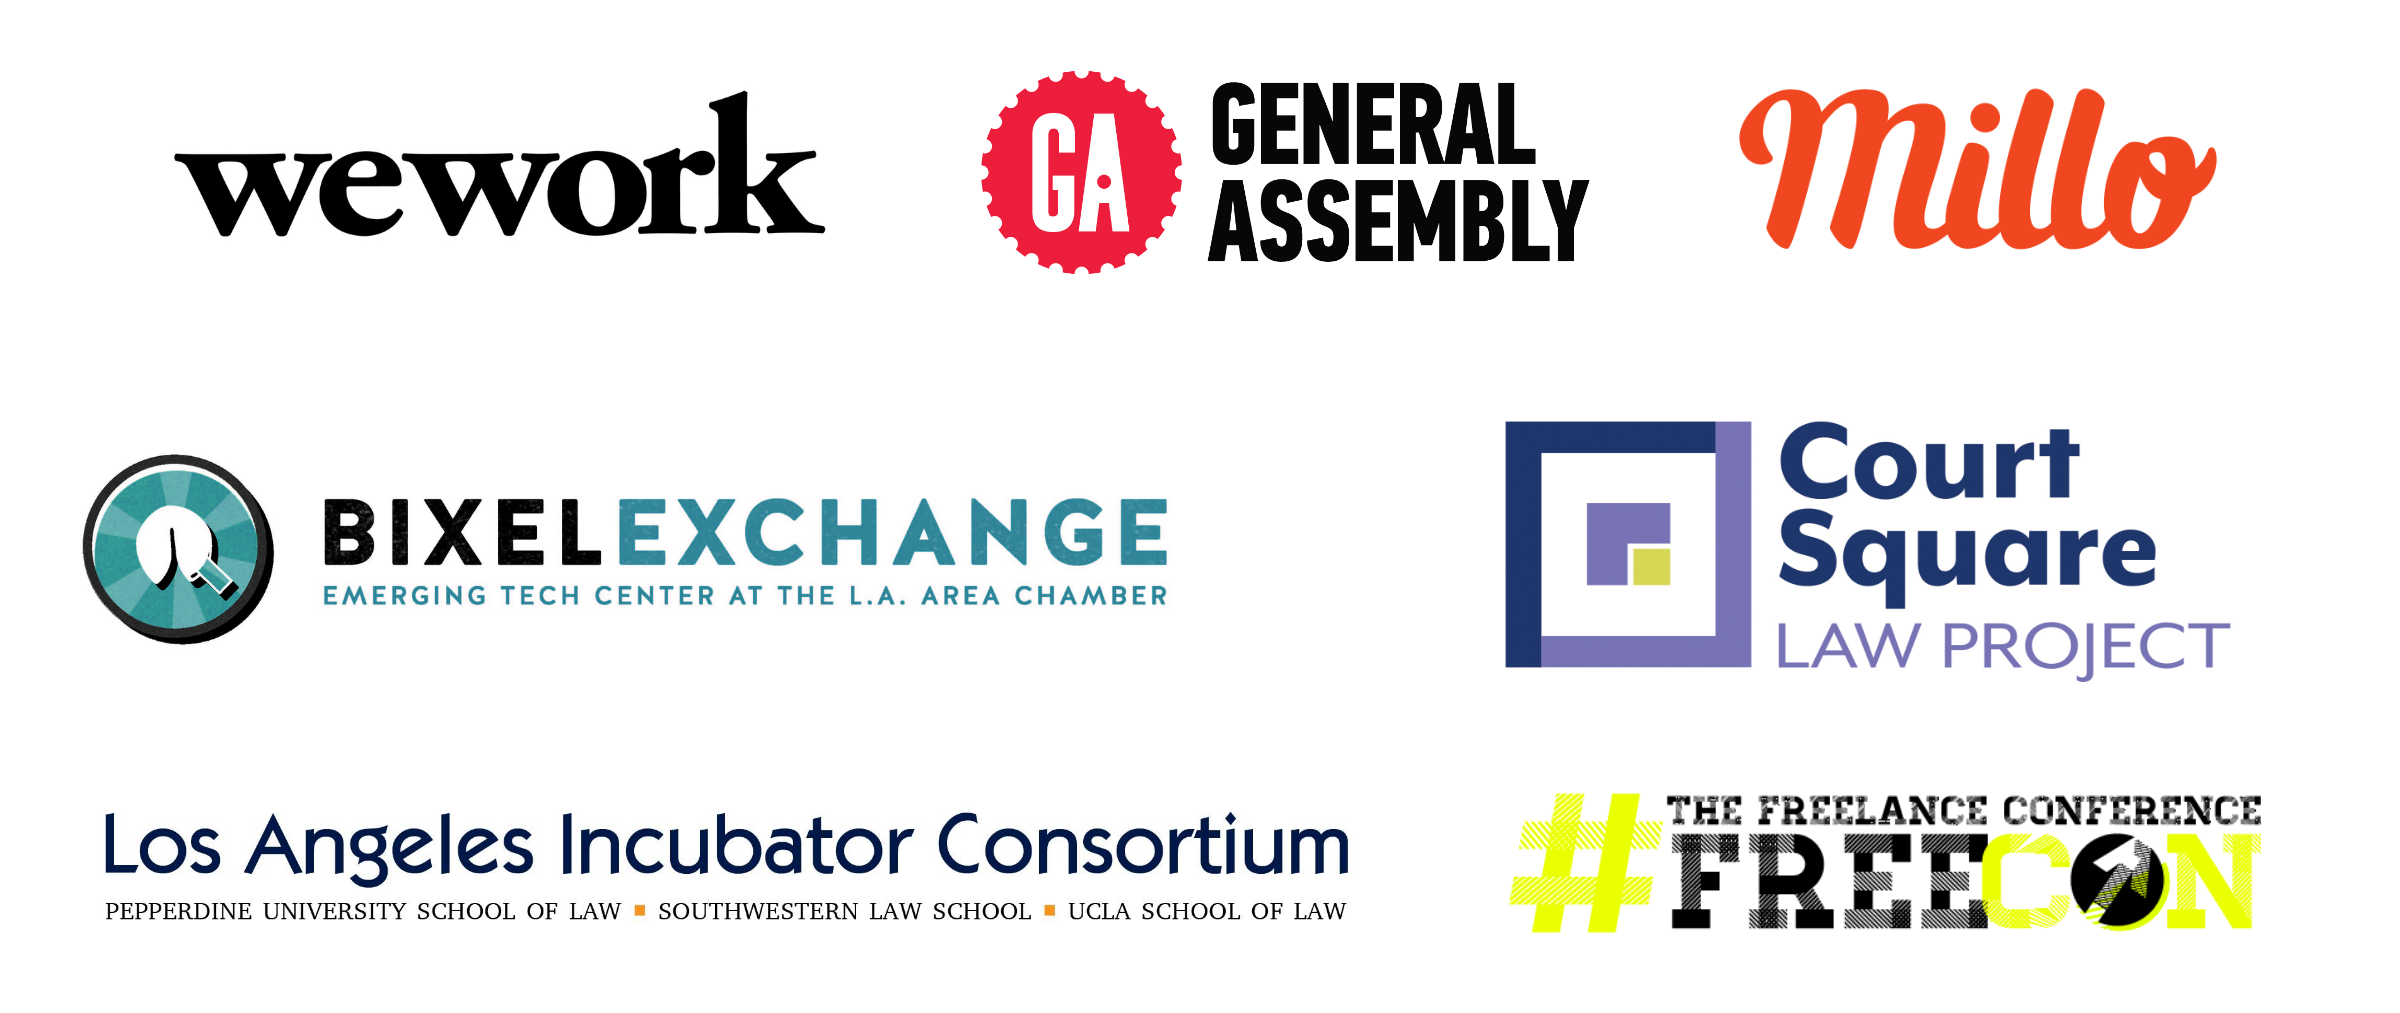 Wework General Assembly Bixel Exchange Chamber of Commerce Los Angeles Incubator Consortium Freelance Conference Court Square Law Project Millo Partners Partnership Entrepreneur Freelancer